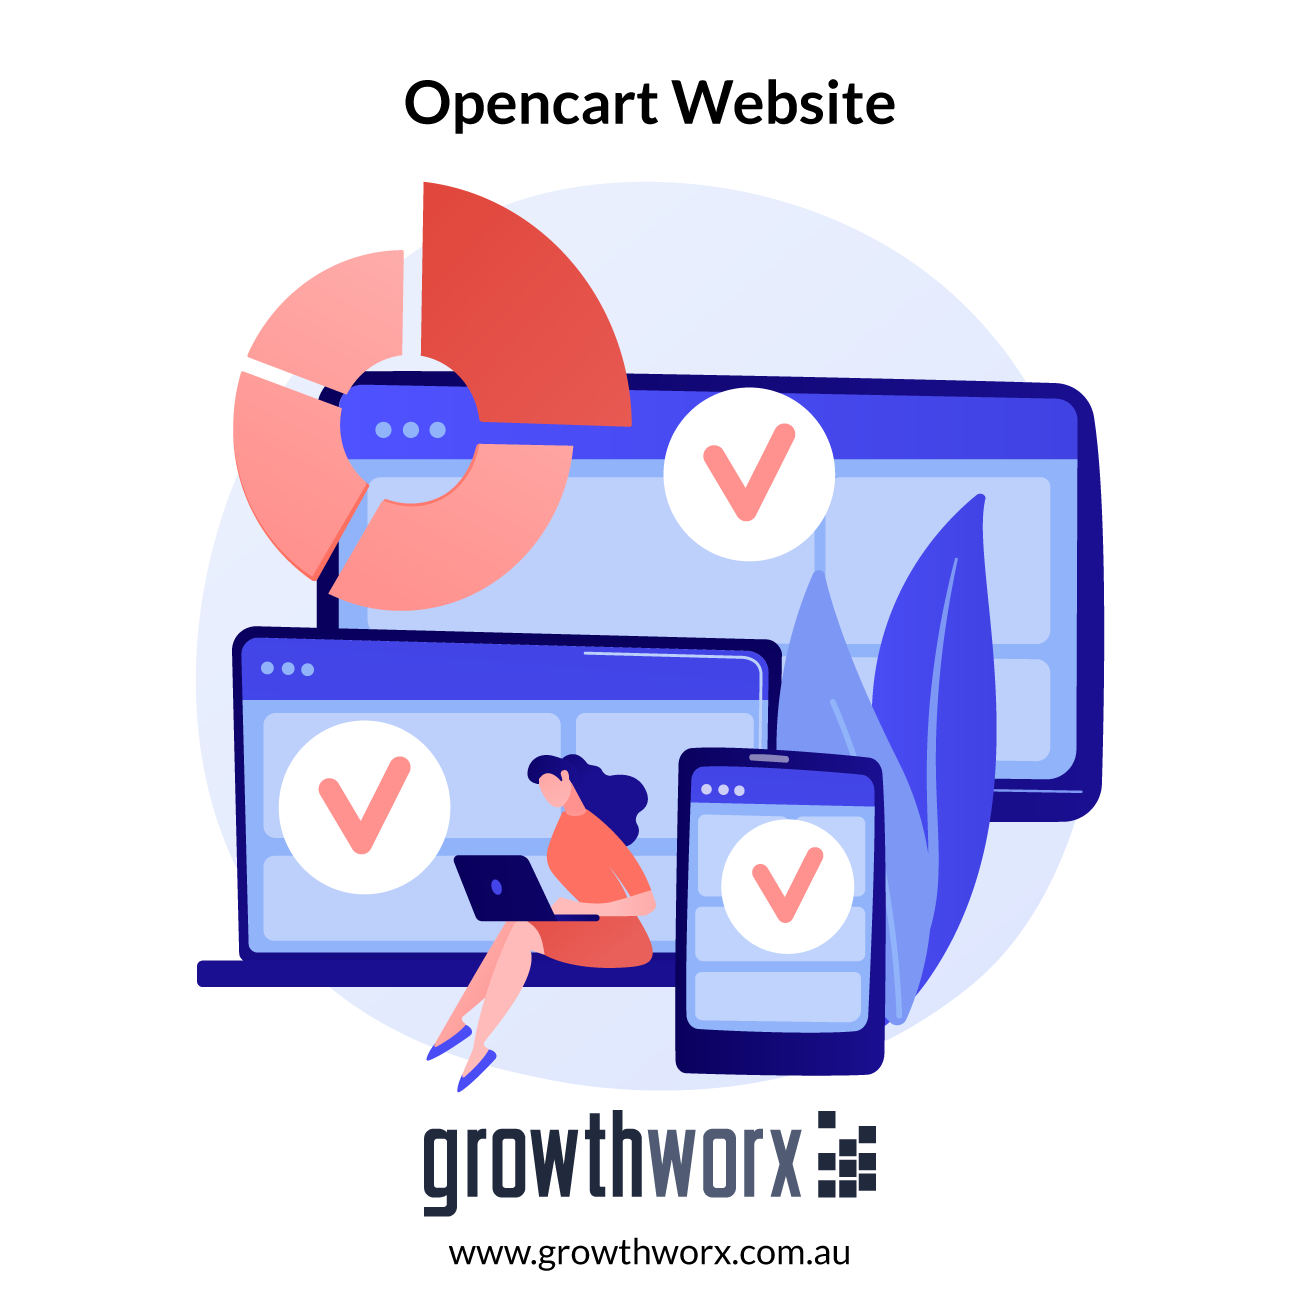 Upload 1000 products with details into your Opencart website store 1